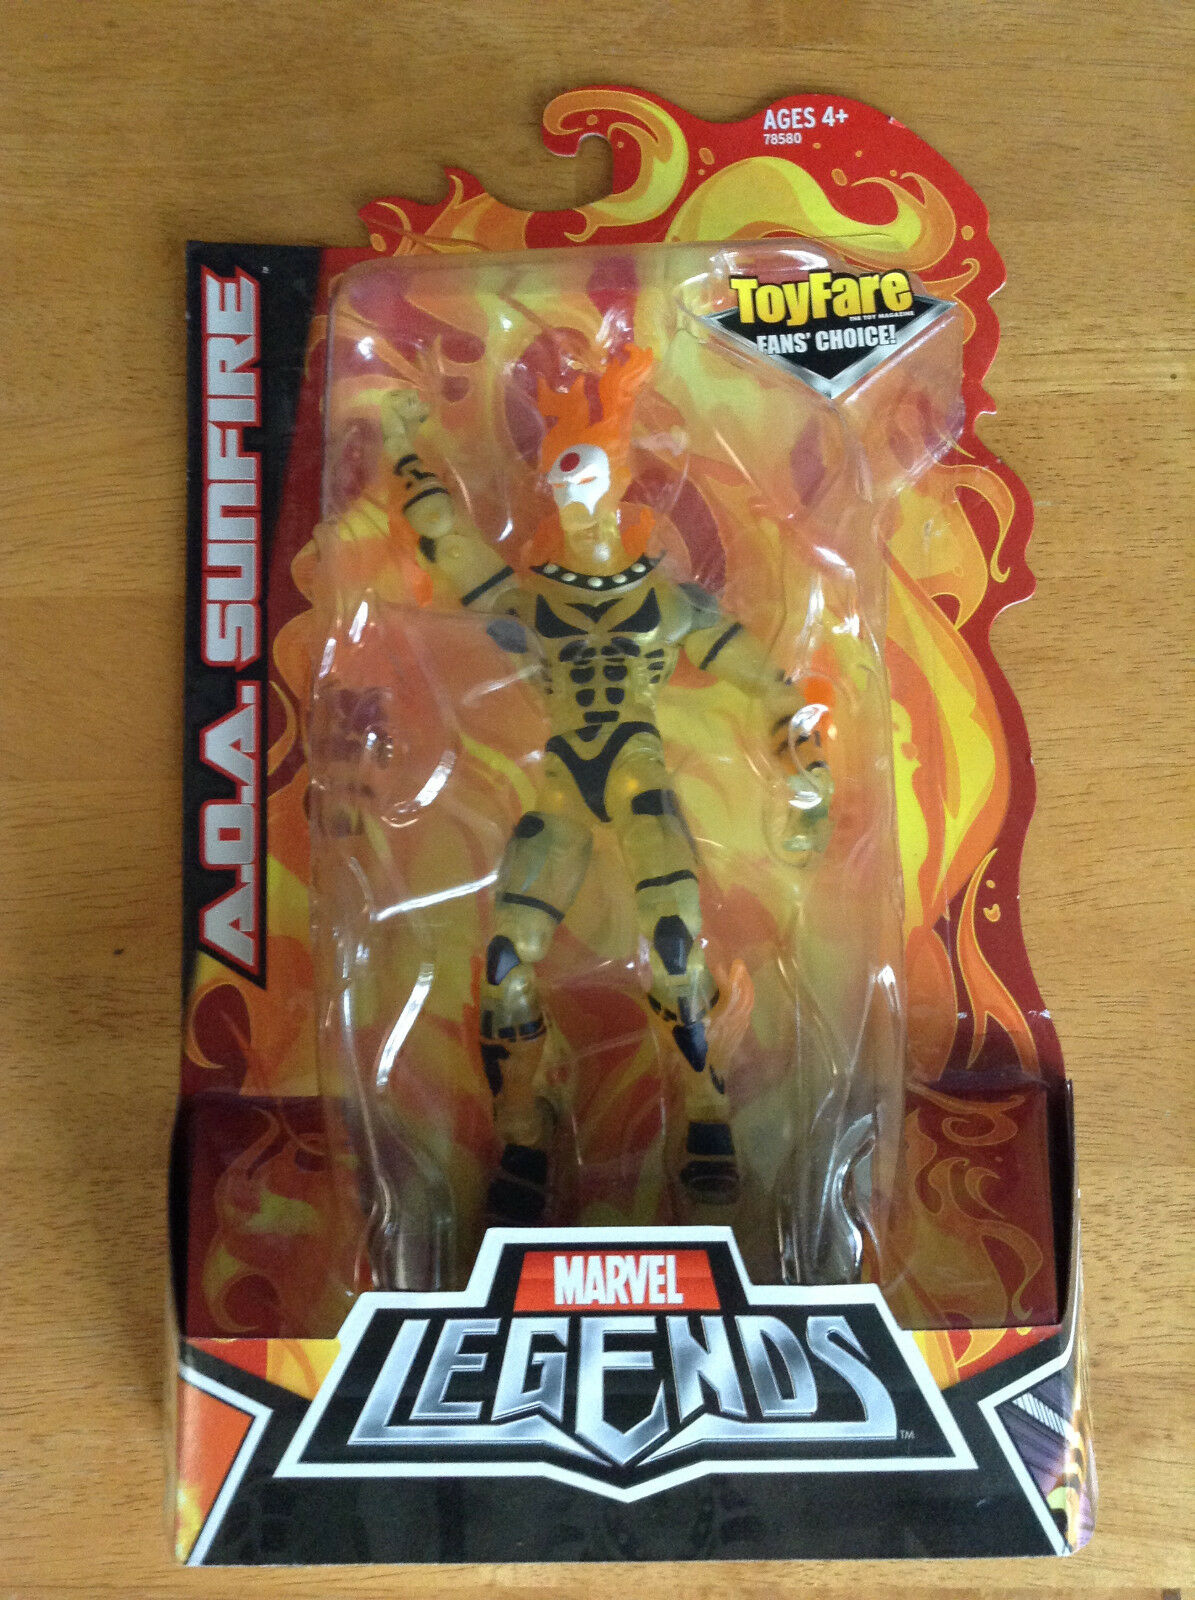 Marvel Legends NEW - AOA SUNFIRE - Toyfair SDCC Exclusive - X-Men Apocalypse